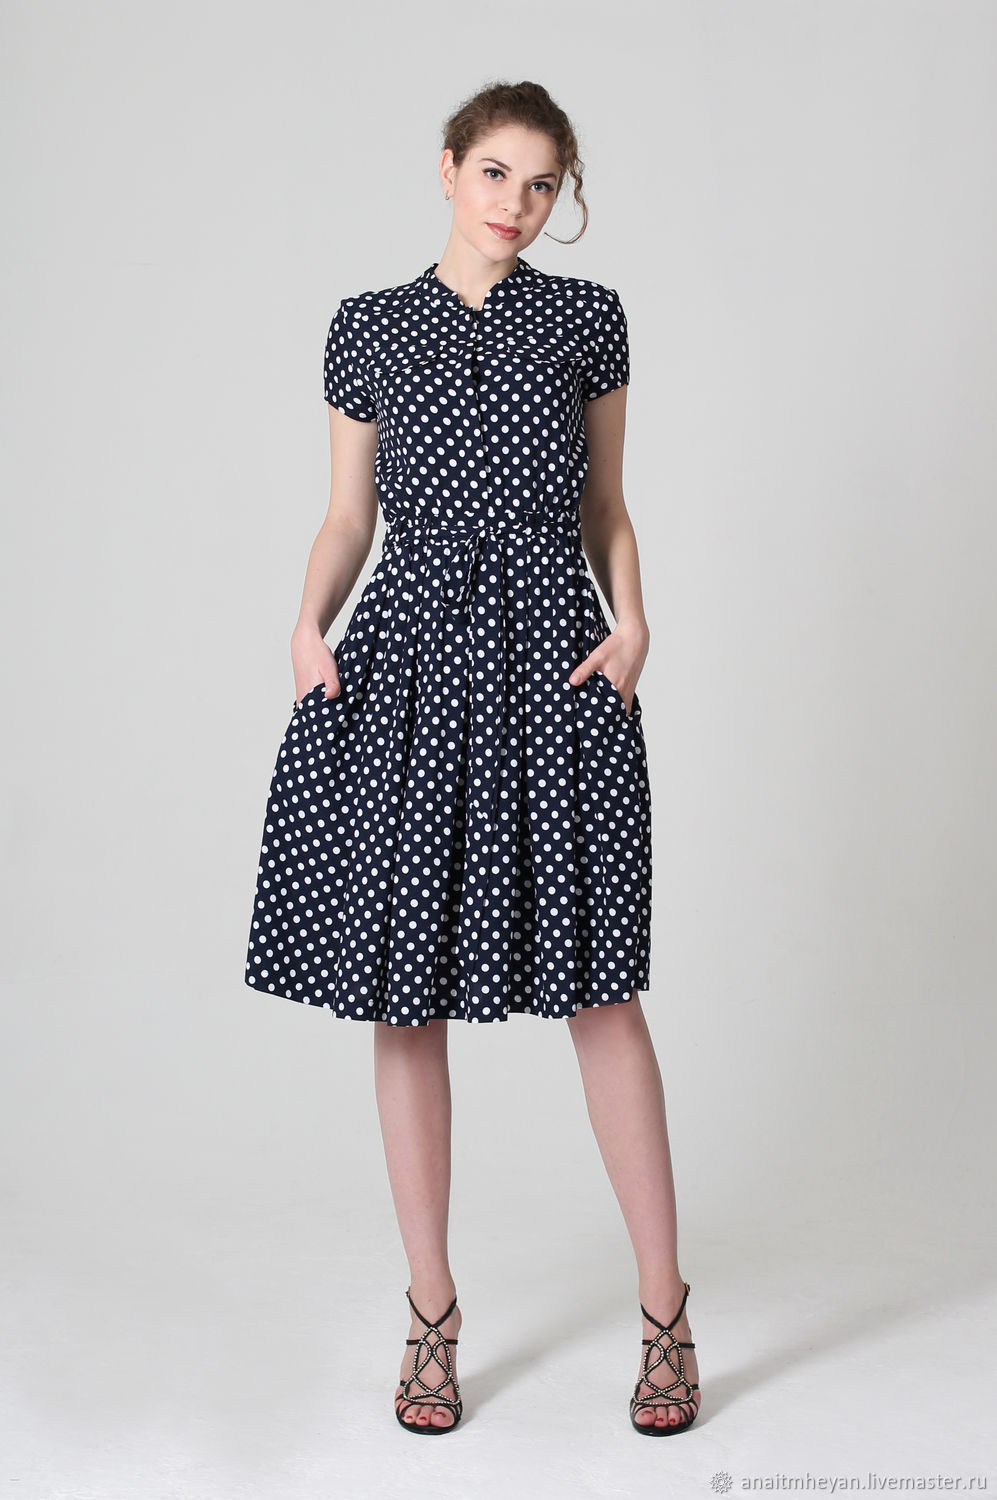 dc6c5ffa4f95 Dress – shop online on Livemaster with shipping - GMTHLCOM